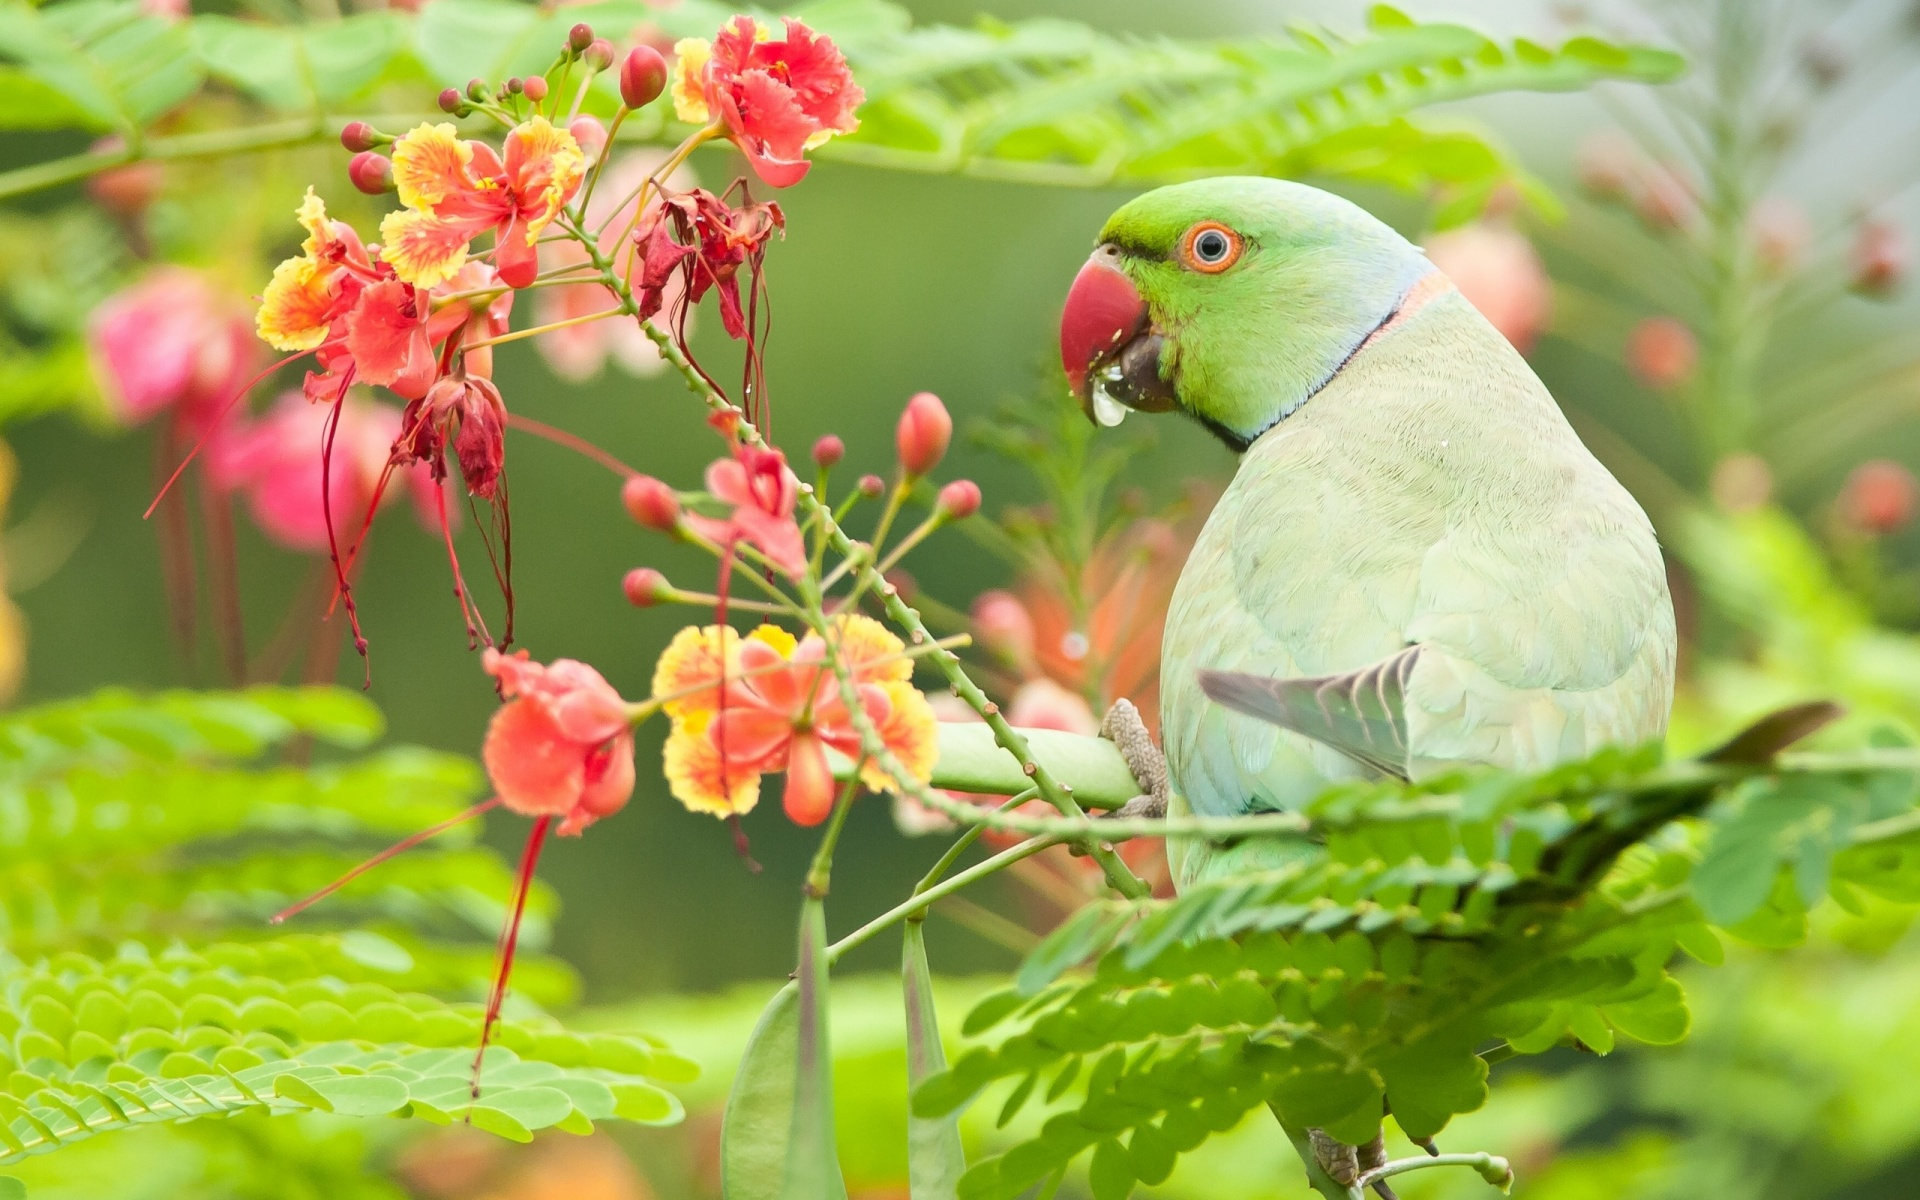 Green Birds Names Green Parrot Bird With Flowers